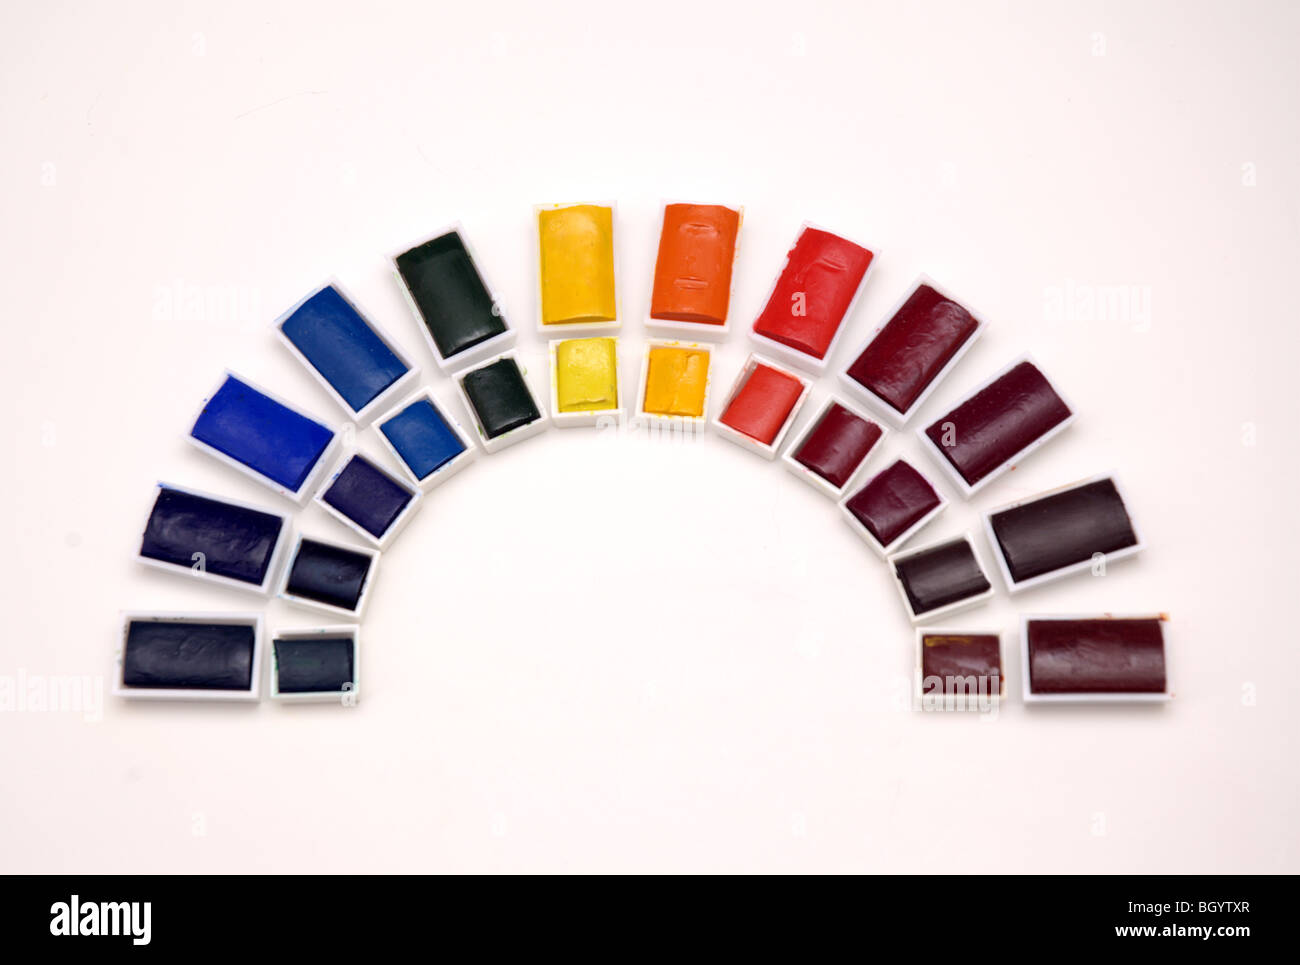 Rainbow of half and full watercolour paints - Stock Image